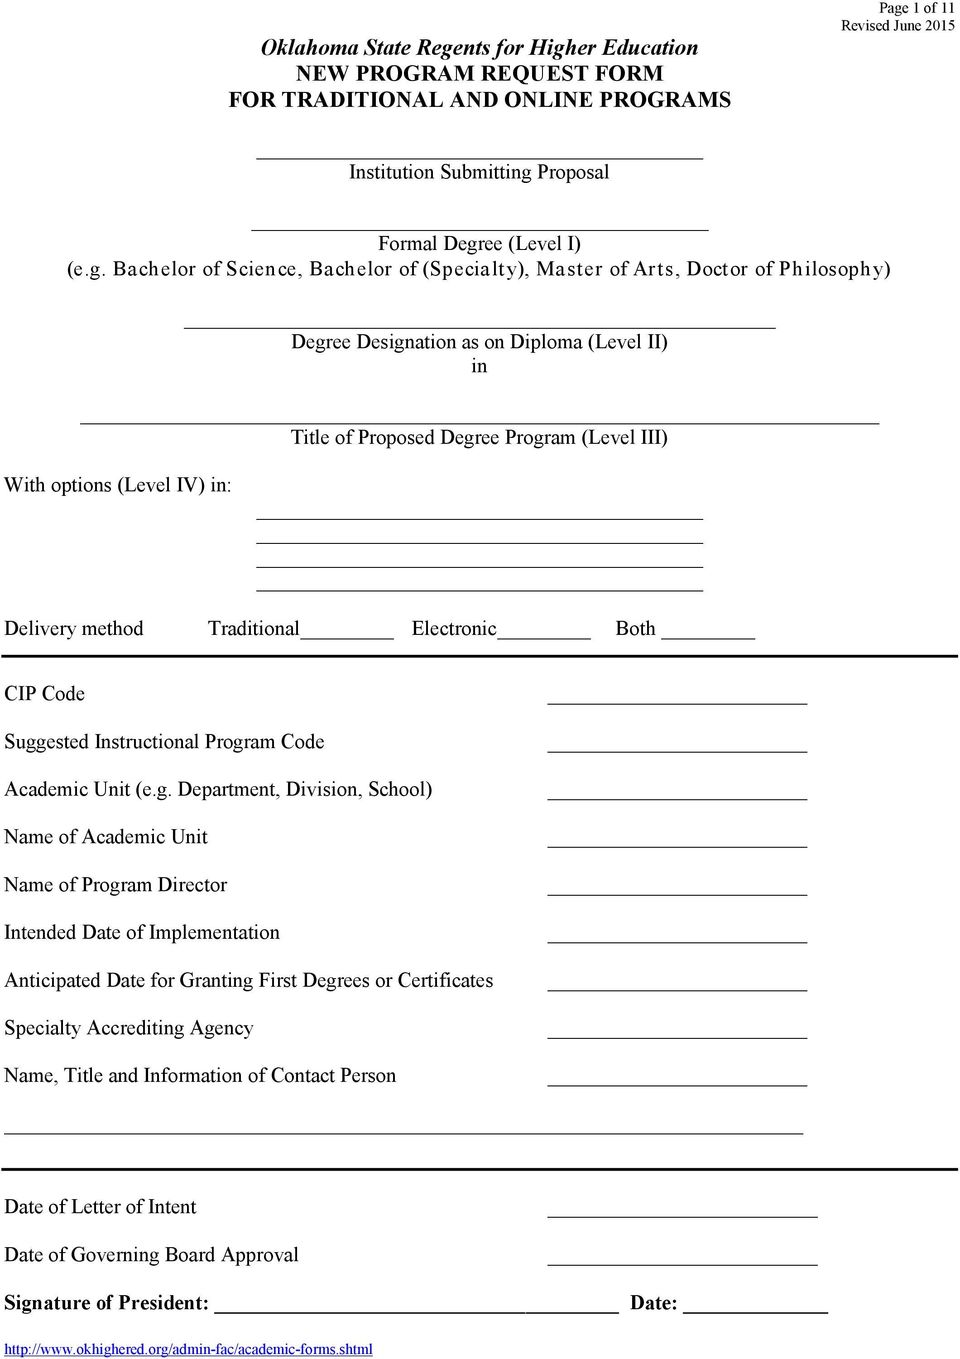 er Education NEW PROGRAM REQUEST FORM FOR TRADITIONAL AND ONLINE PROGRAMS Page